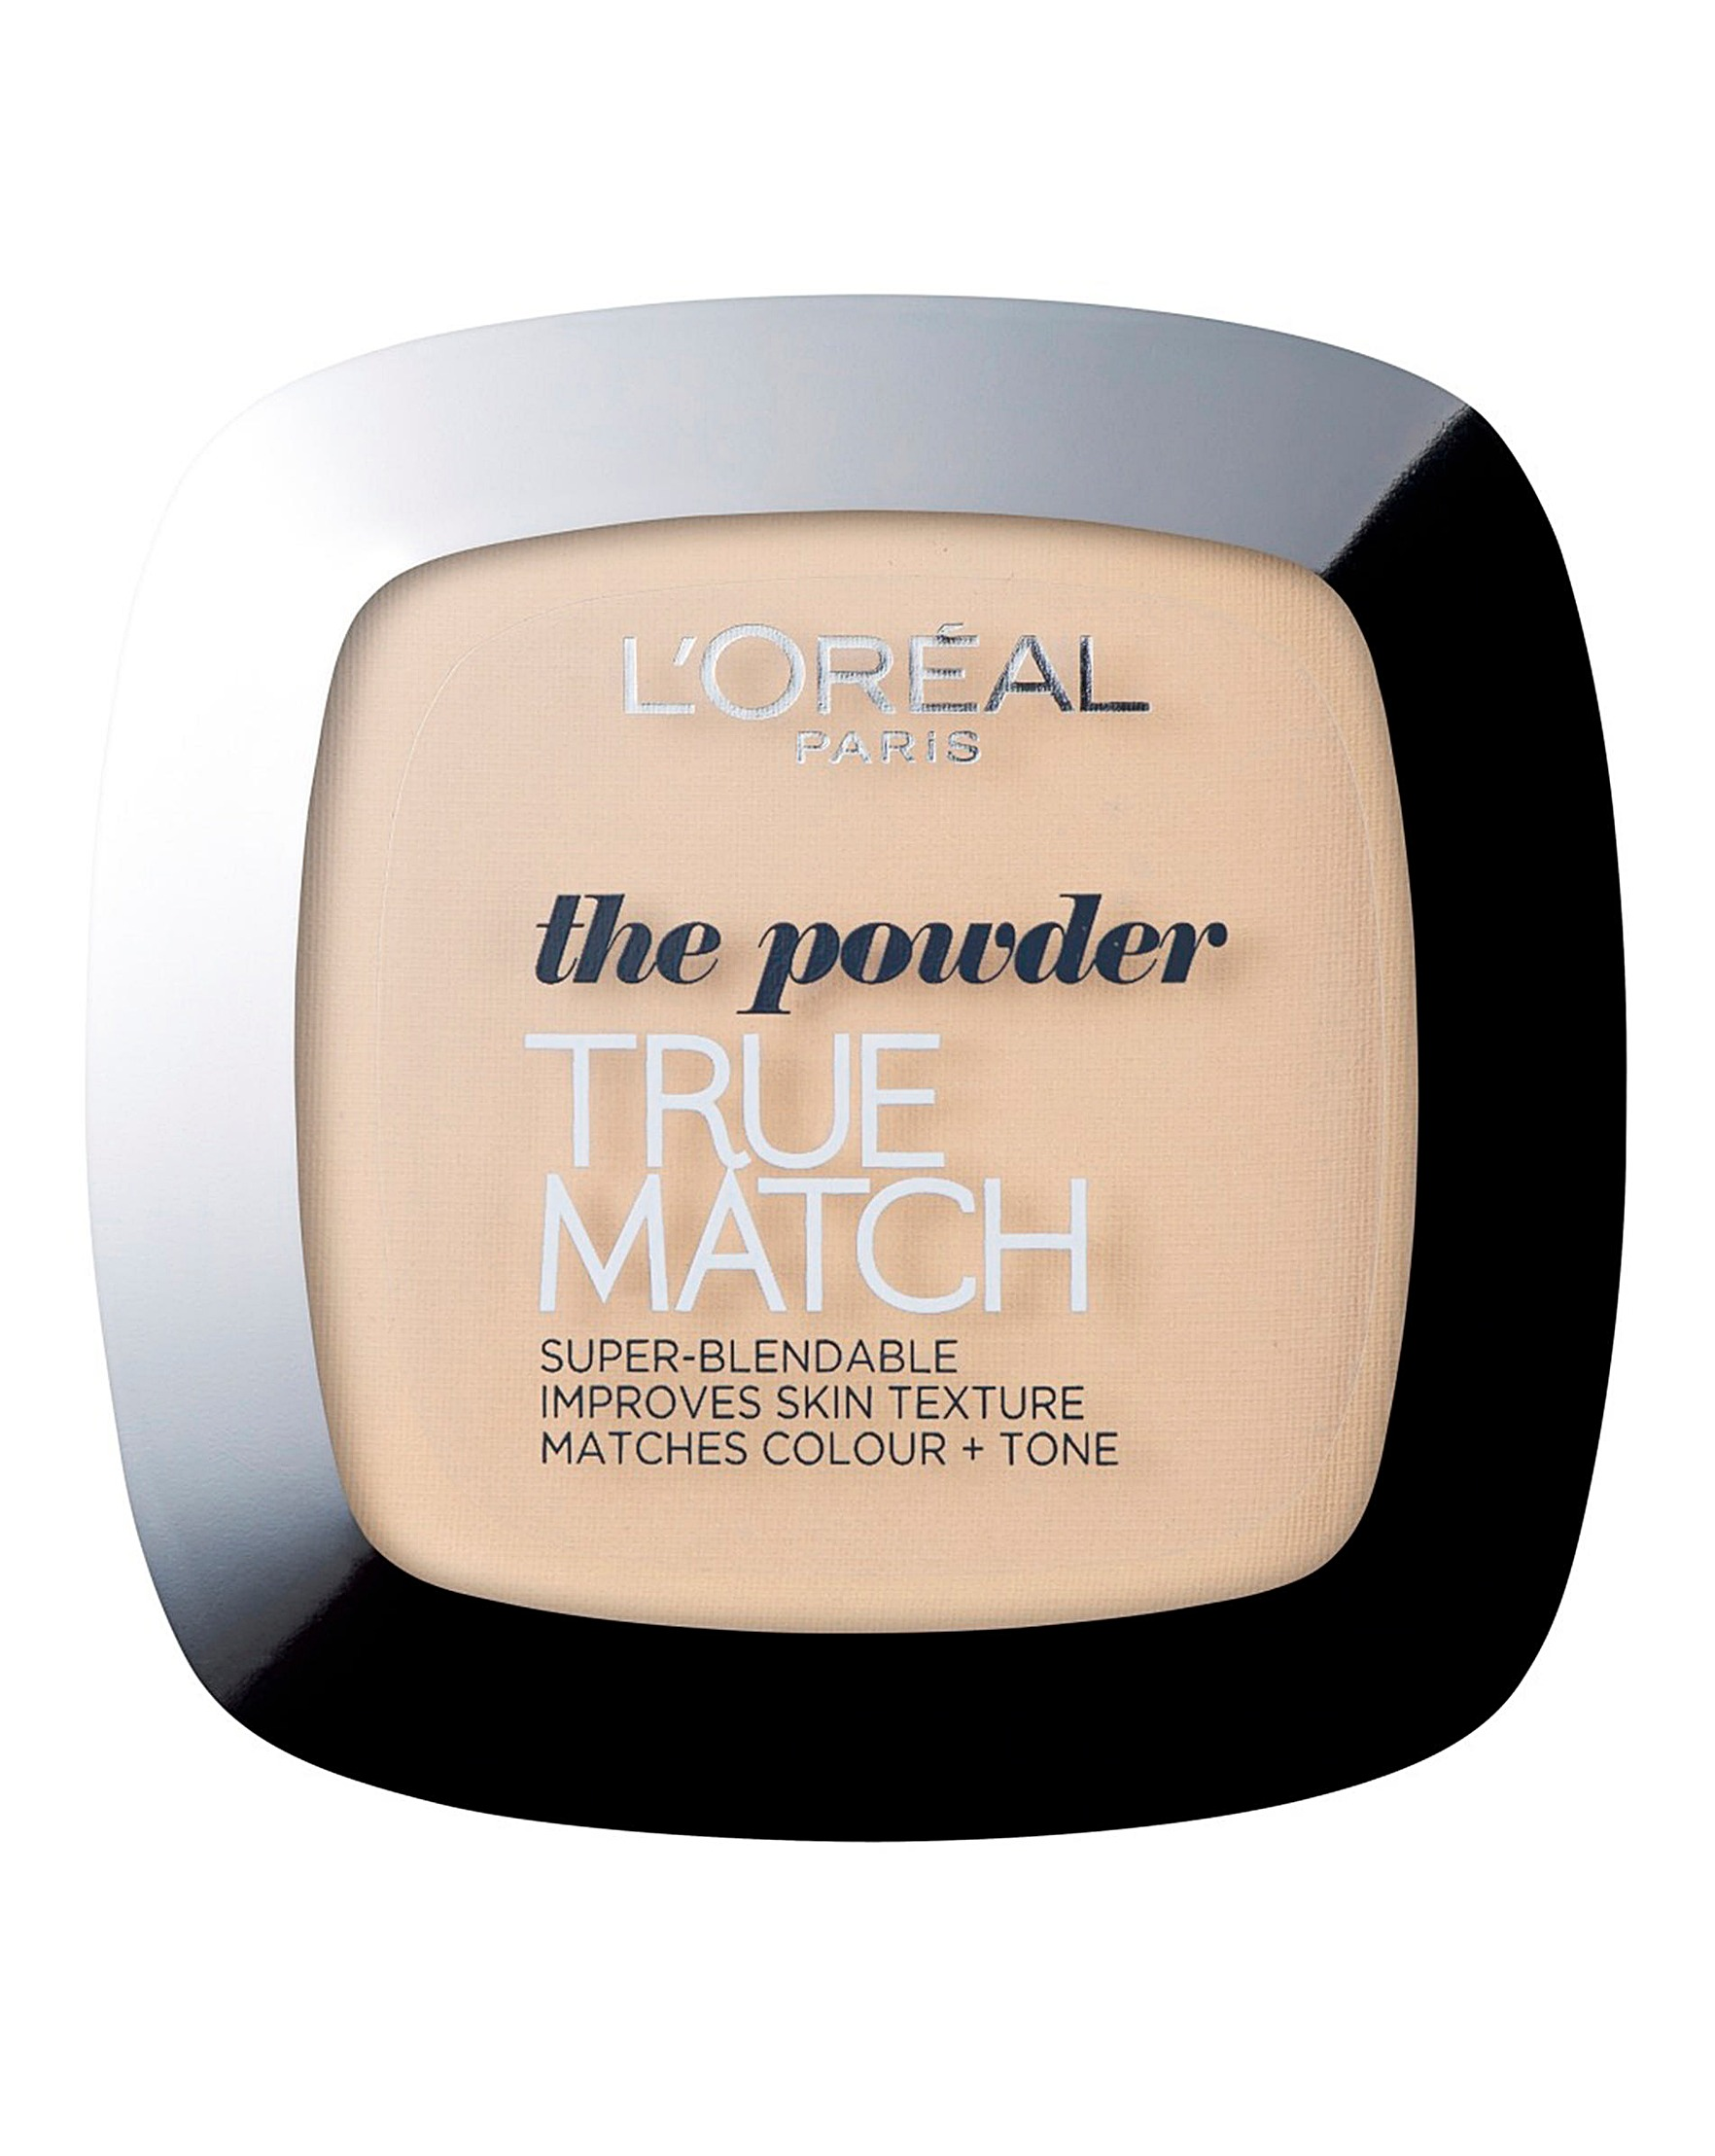 Loreal True Match Pressed Powder 1w Home Beauty Gift Shop Perfecting